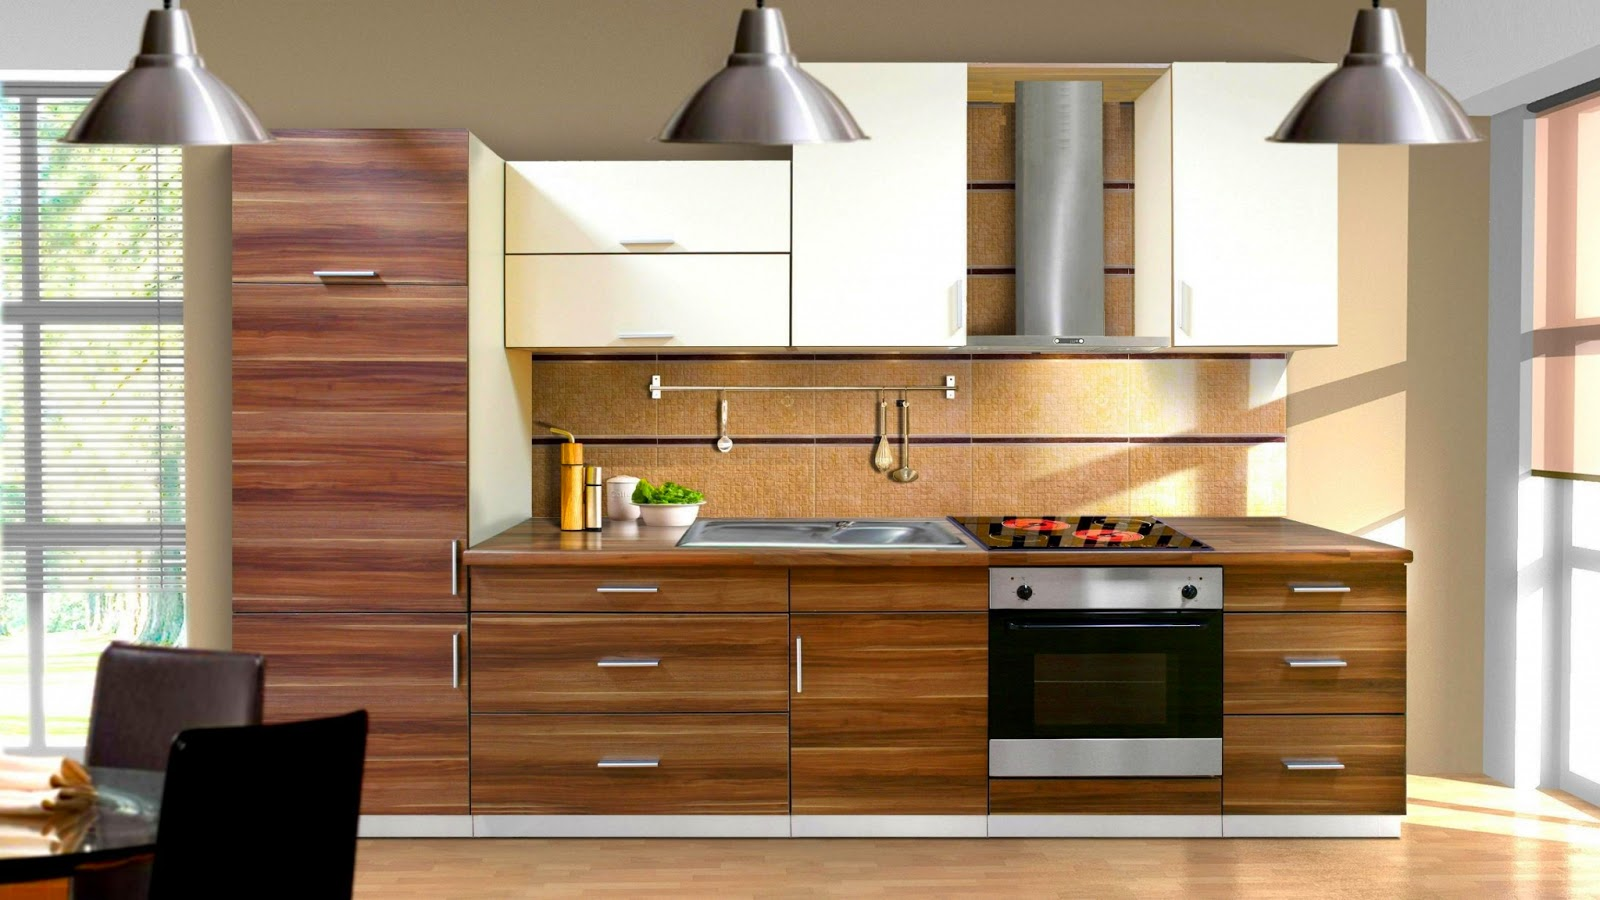 Kitchen Cabinets Pune Gemini Properties 2bhk Residential Apartment For Sale In Chandan